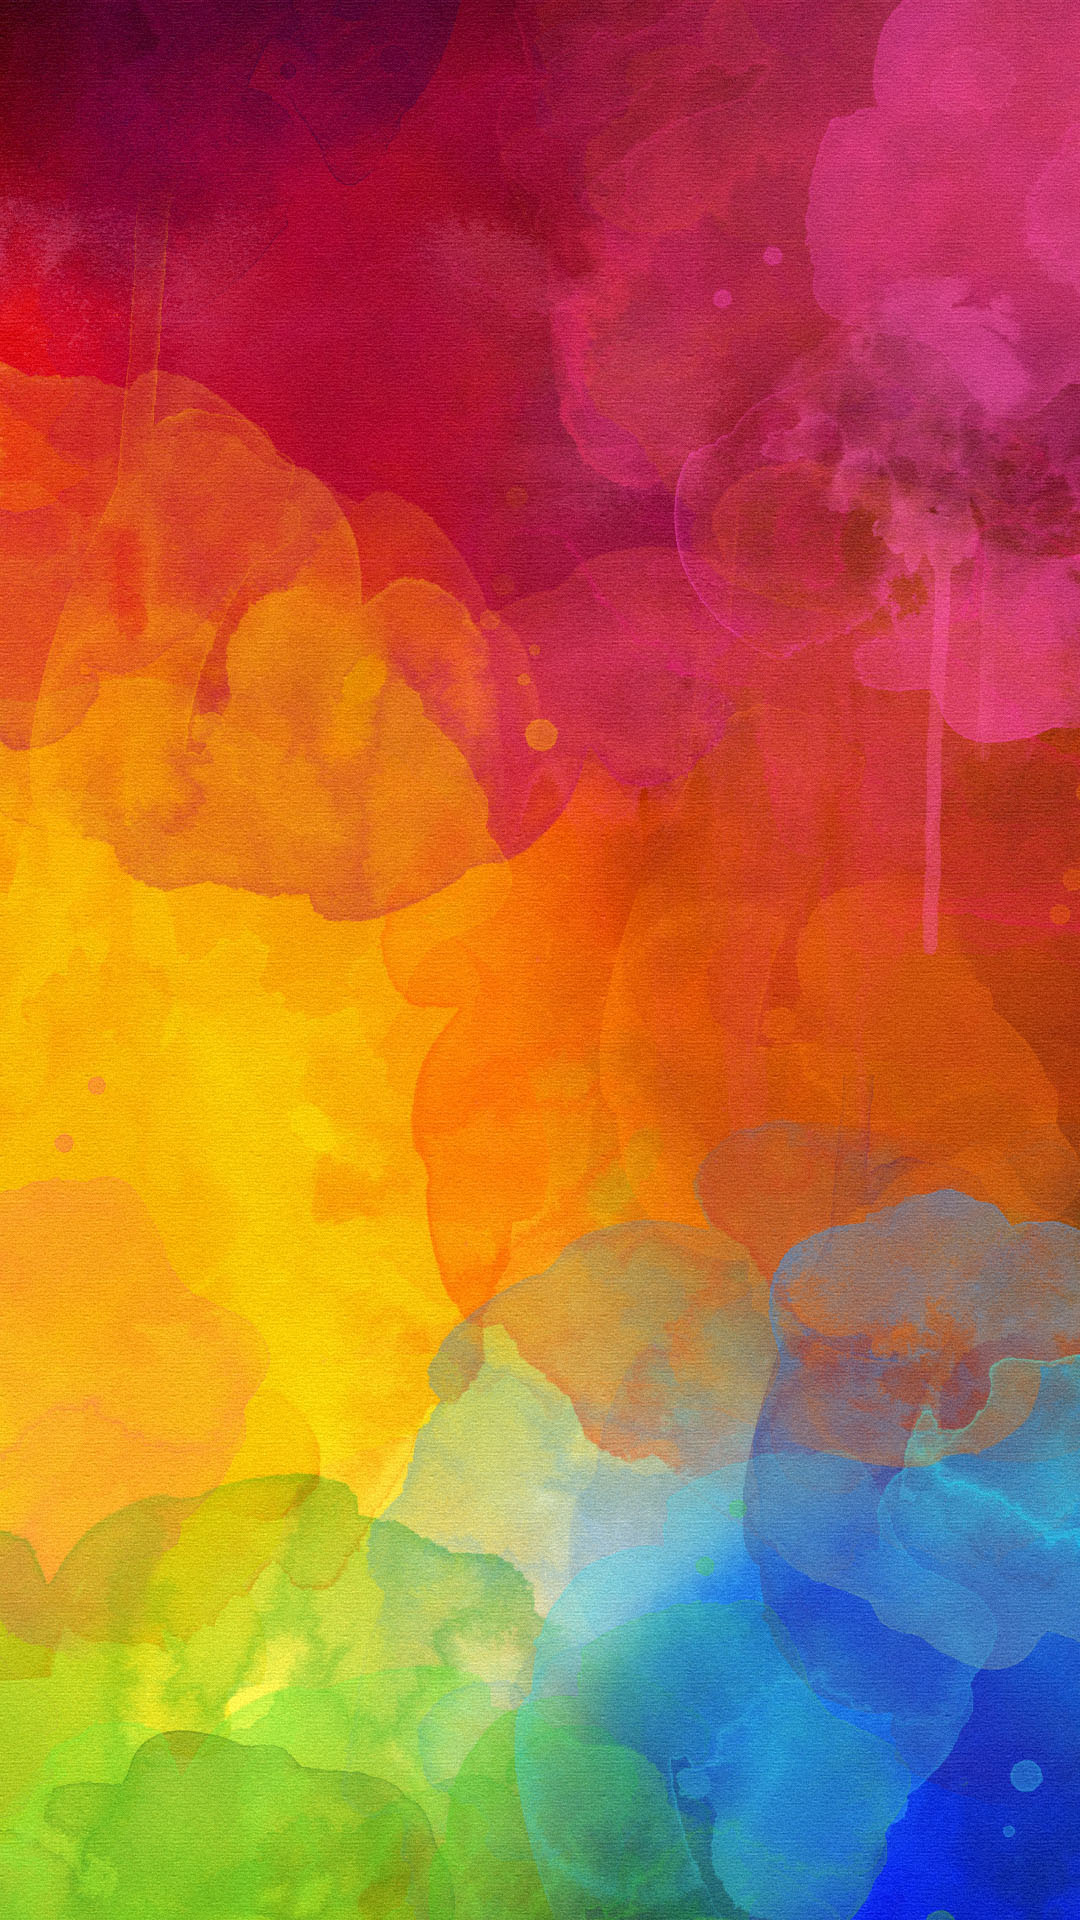 Colourful-Watercolour-Mark-Color-of-rainbow-in-abstract-wallpaper-wpc5803596